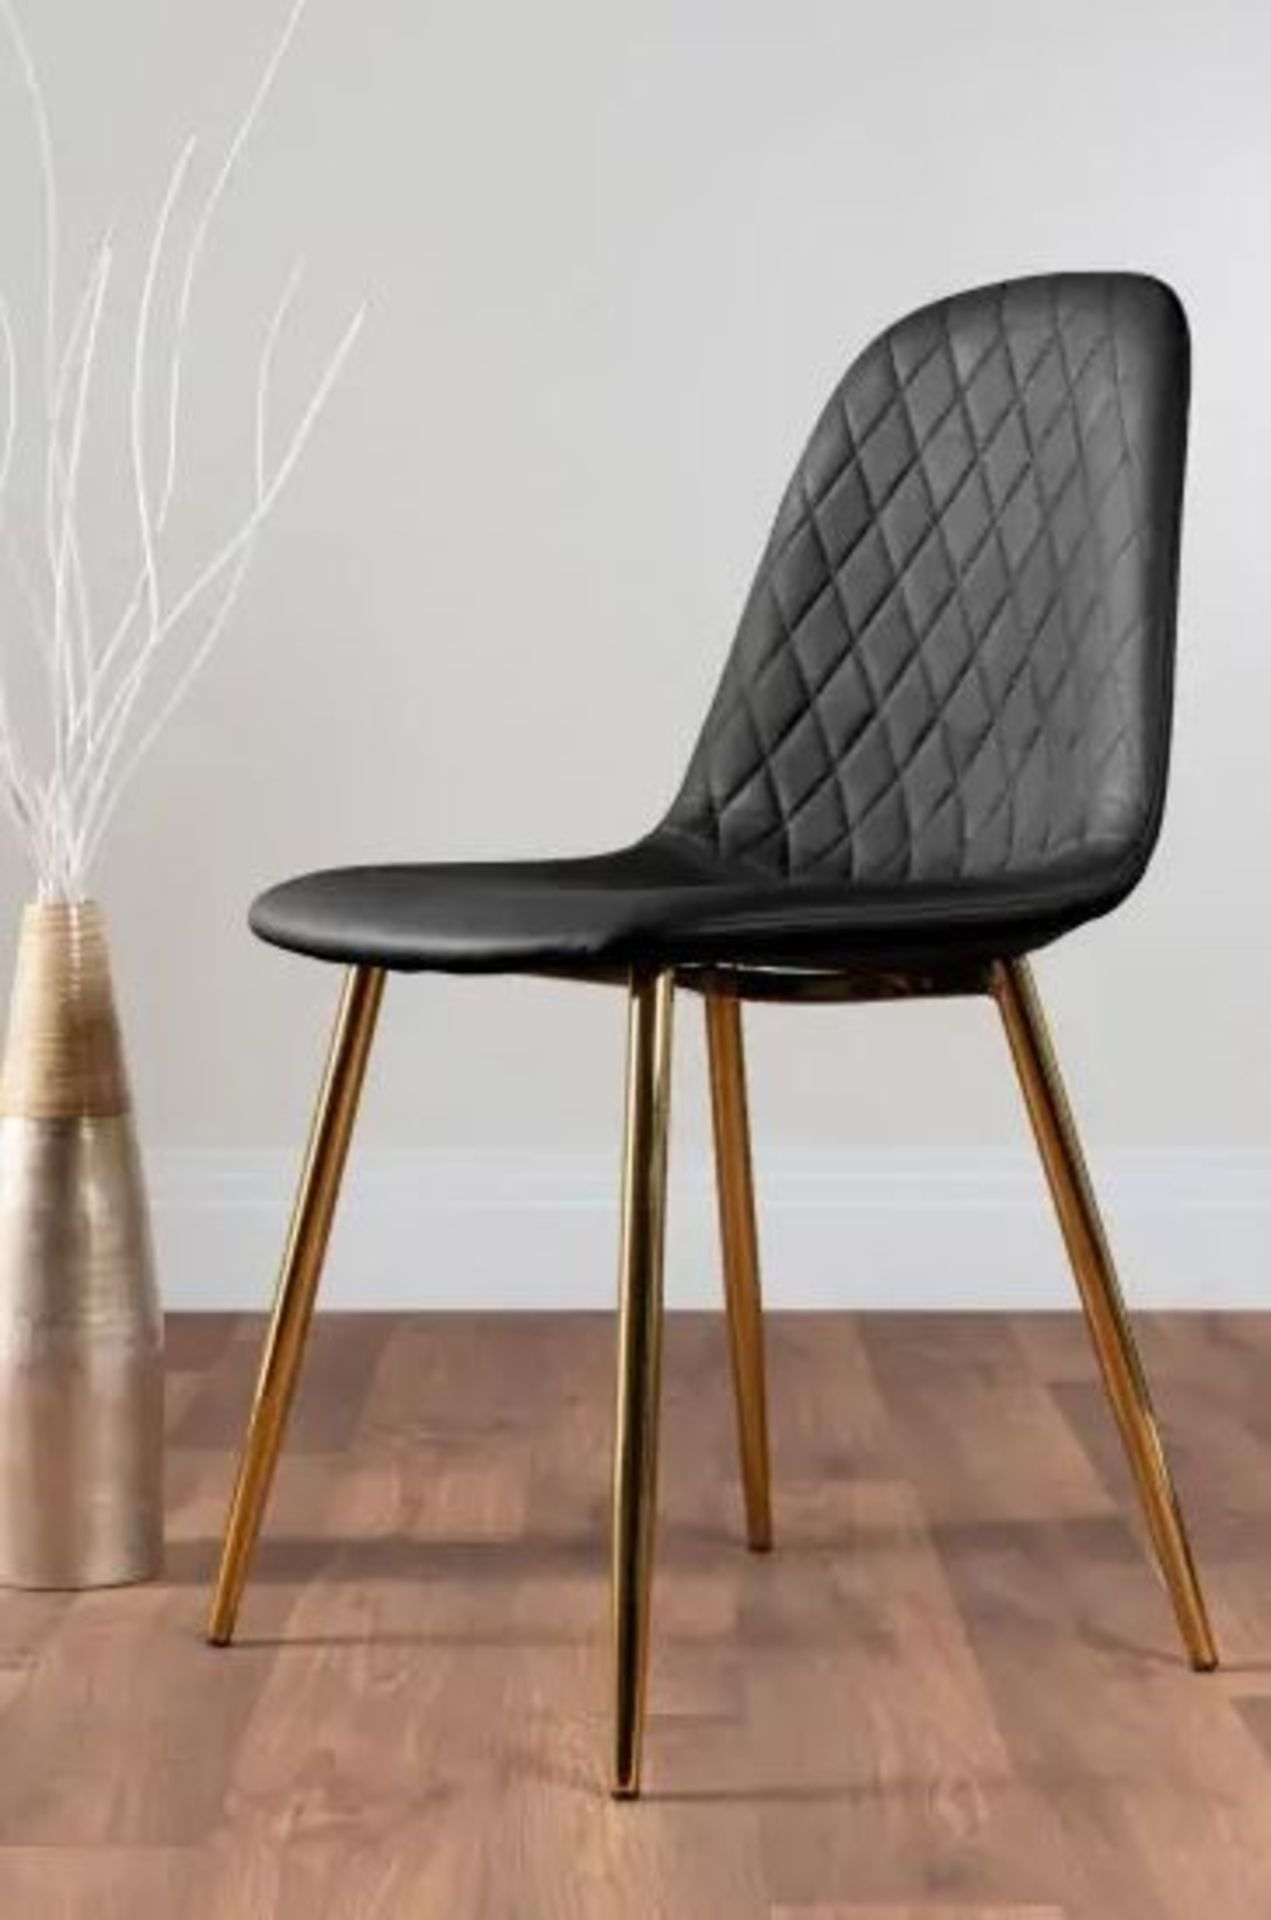 2 X CORONA GOLD LEG BLACK FAUX LEATHER DINING CHAIRS (SET OF 2)